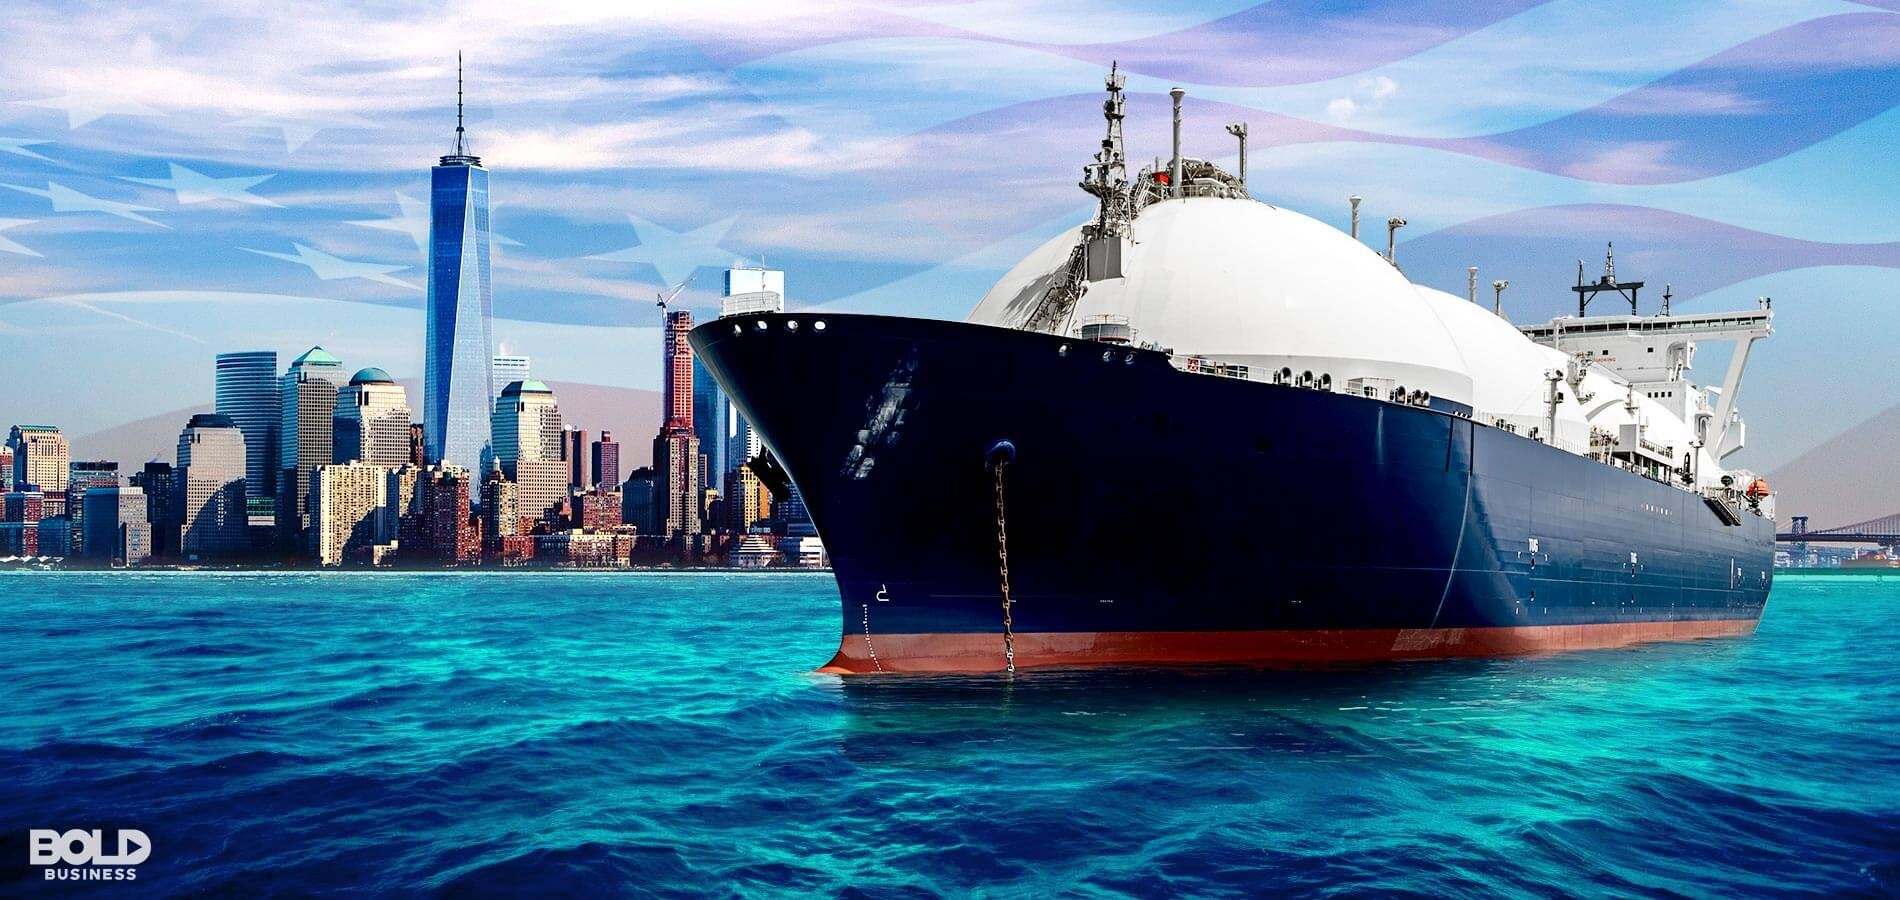 a ship used in US Natural Gas Exports berths in a city harbor